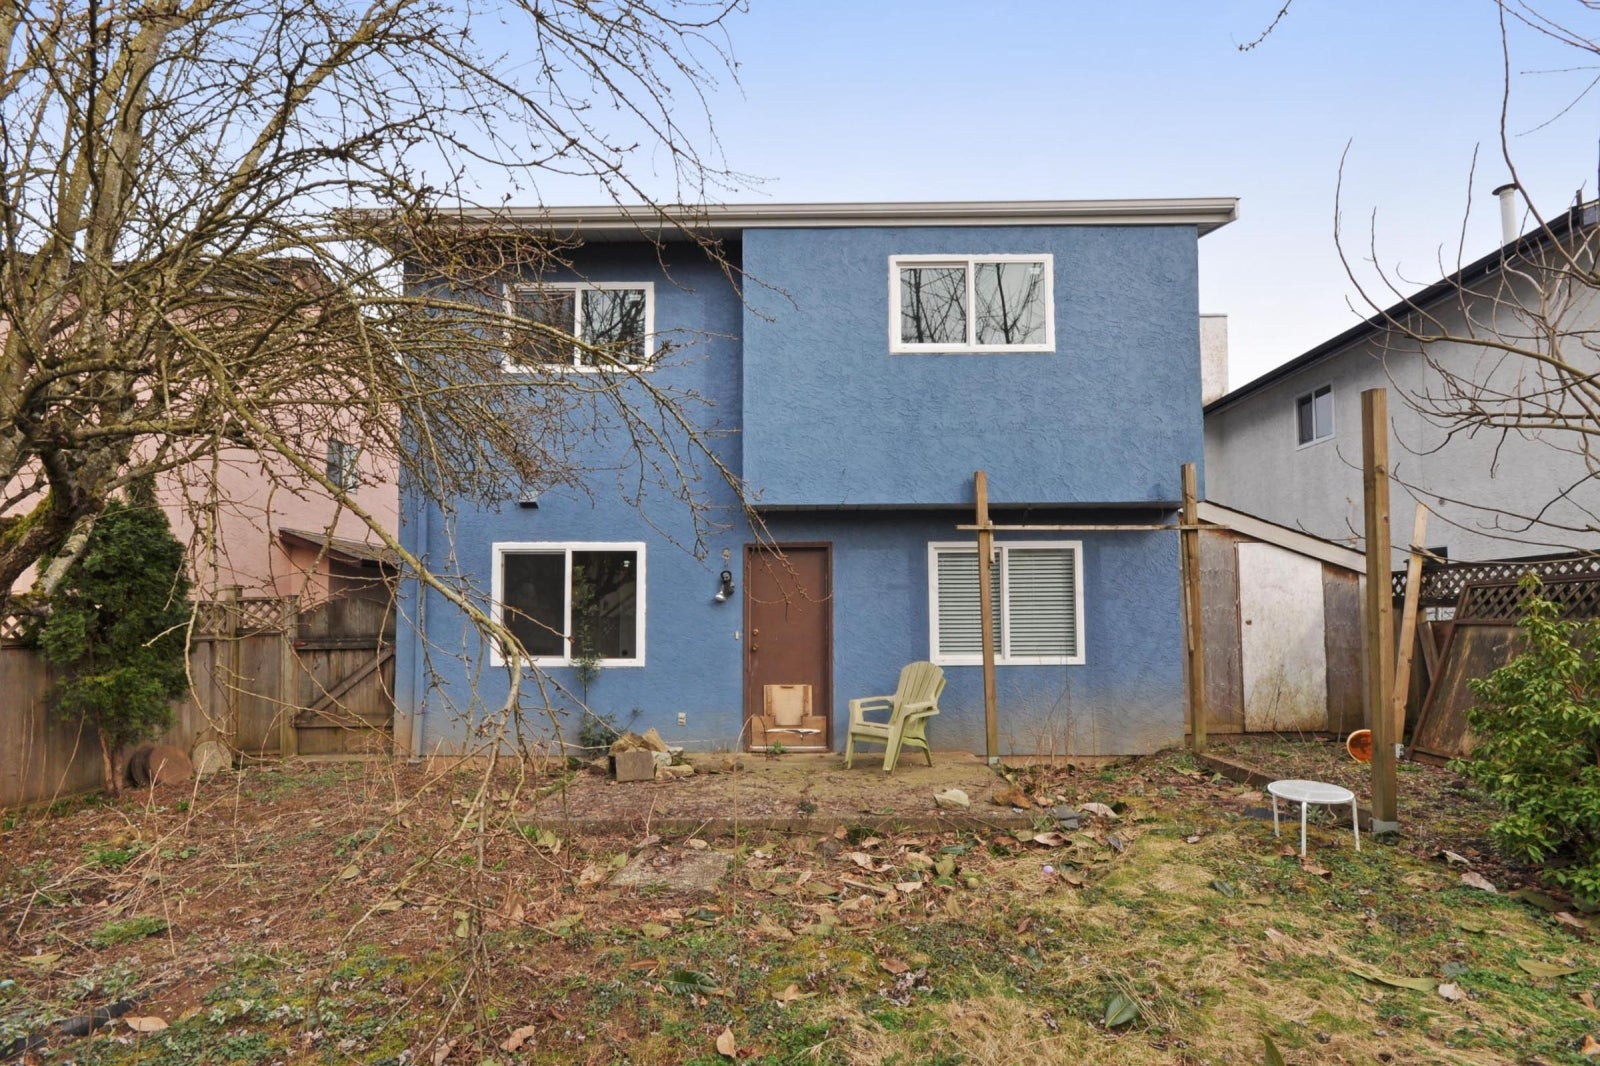 2921 BABICH STREET - Central Abbotsford House/Single Family for sale, 3 Bedrooms (R2155098) #20